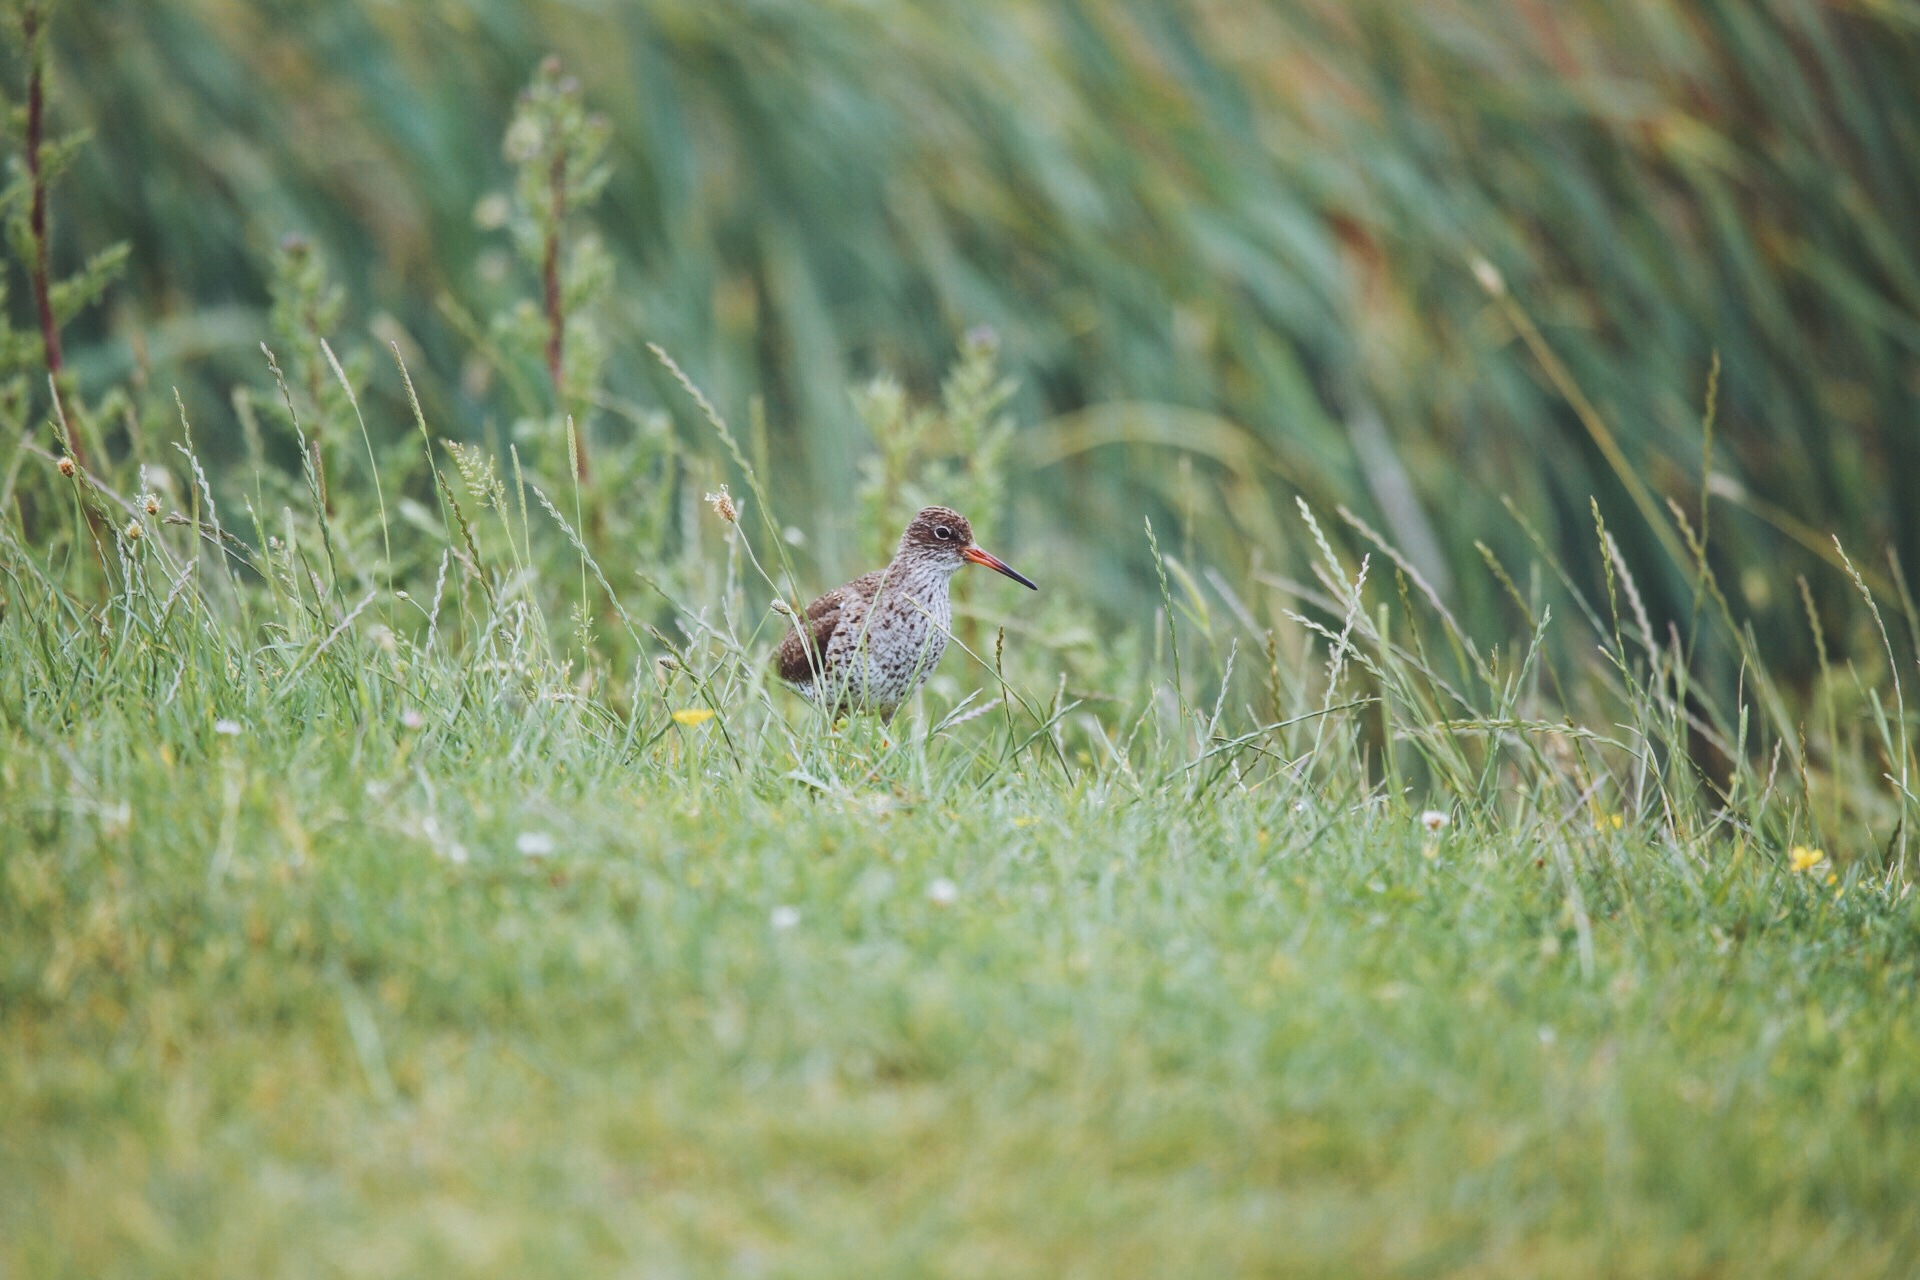 Wildlife at Elmley Nature Reserve, Sheppey